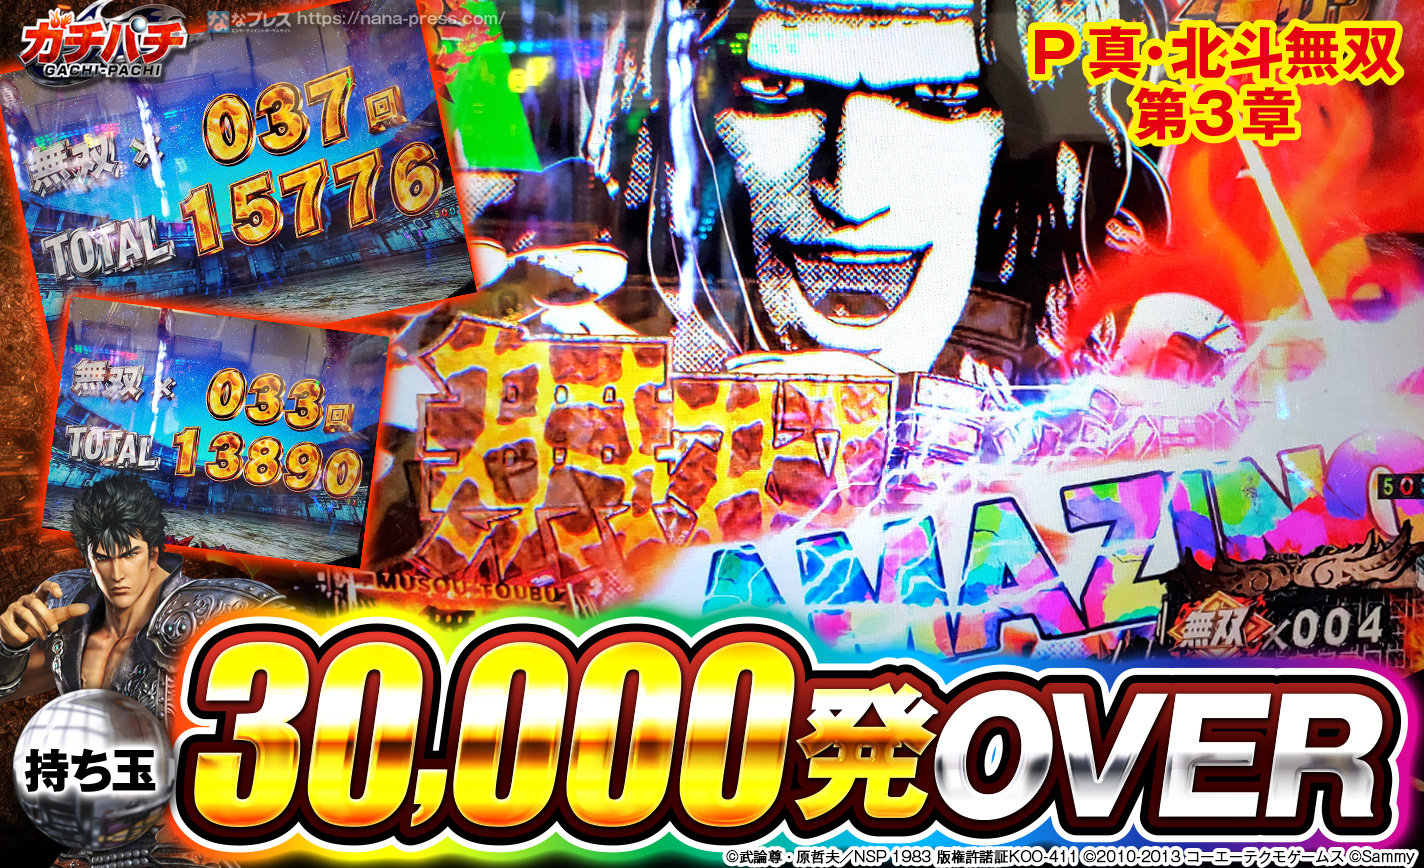 【P真・北斗無双 第3章】初当たりが全てラッシュに入り持ち玉30000発OVER! eyecatch-image